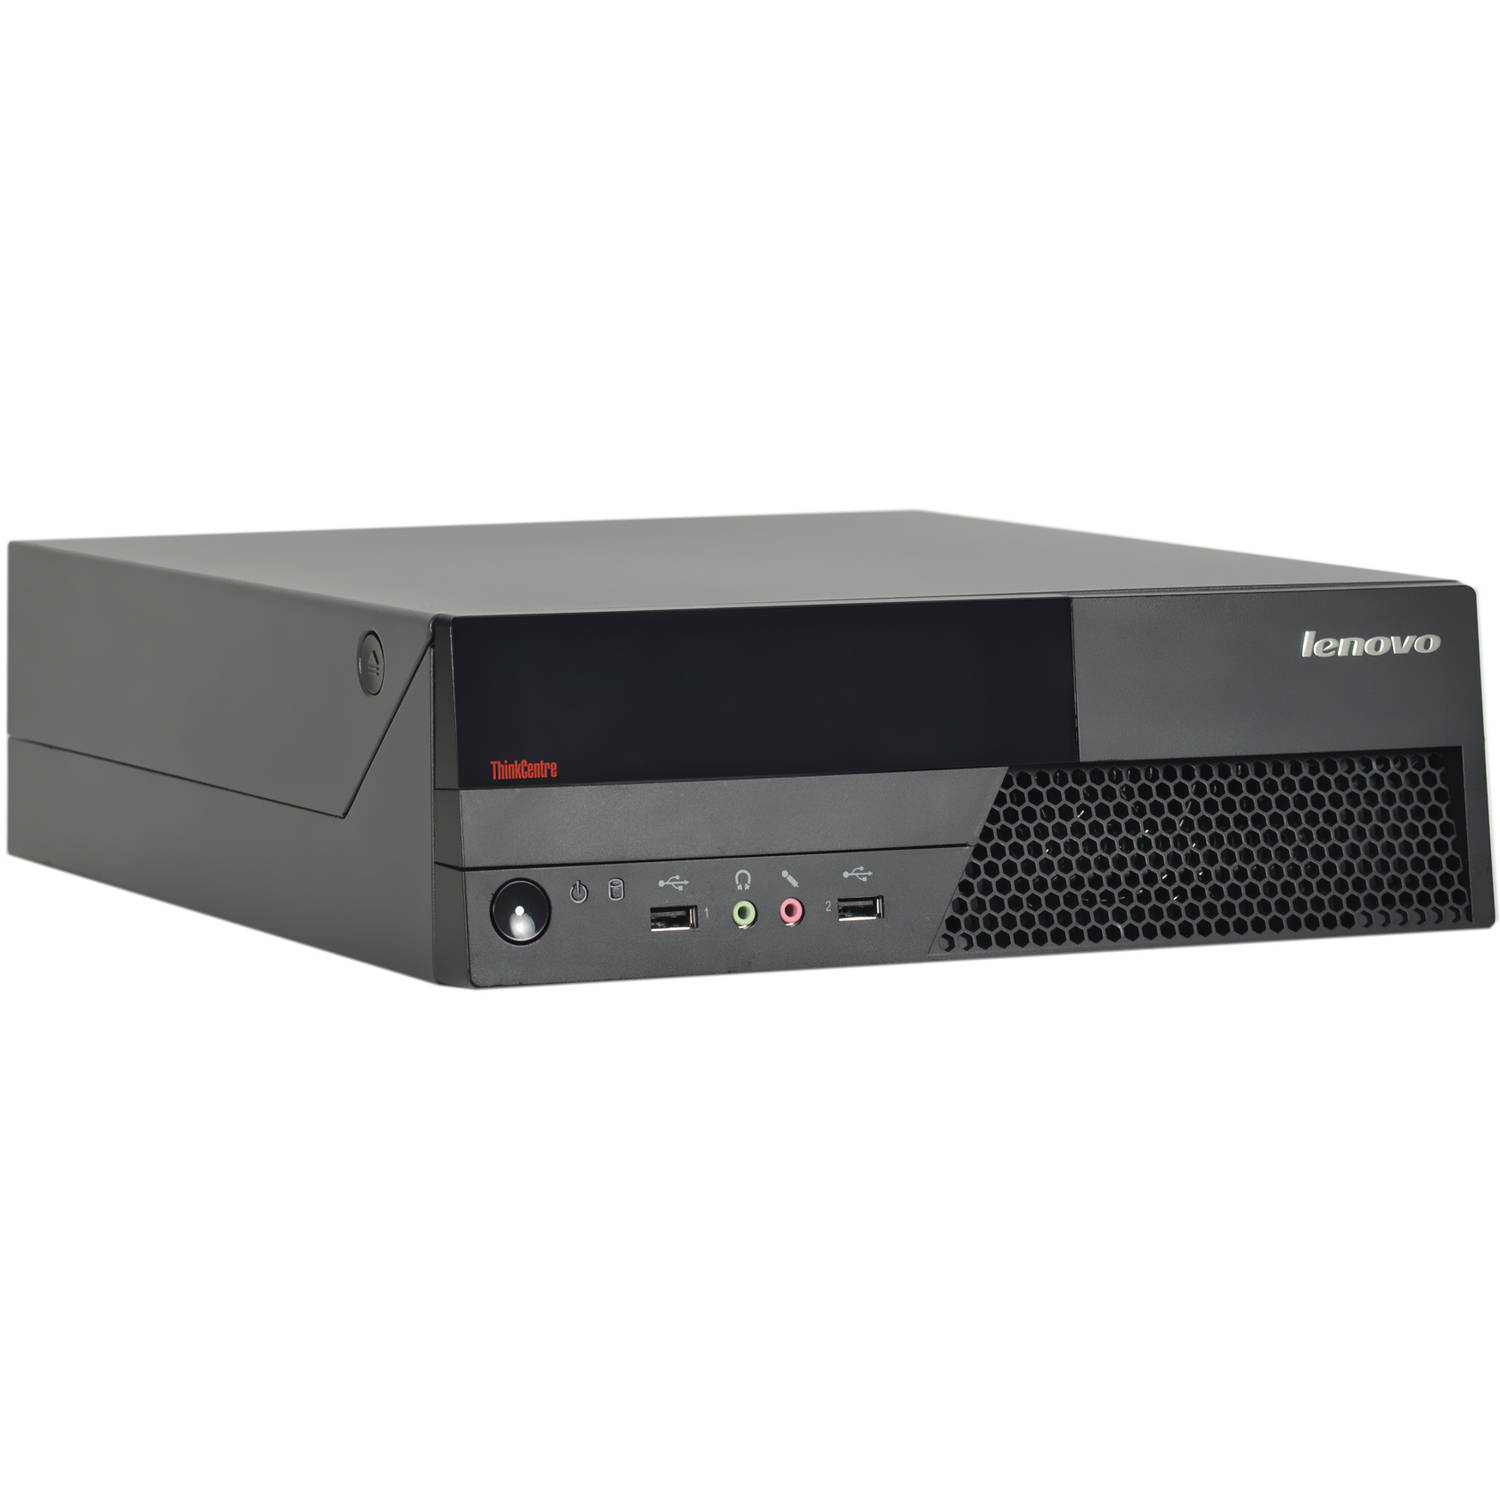 Refurbished Lenovo ThinkCentre M58-SFF Desktop PC with Intel Dual Core Processor, 2GB Memory, 160GB Hard Drive and Windows 10 Home Premium (Monitor Not Included)